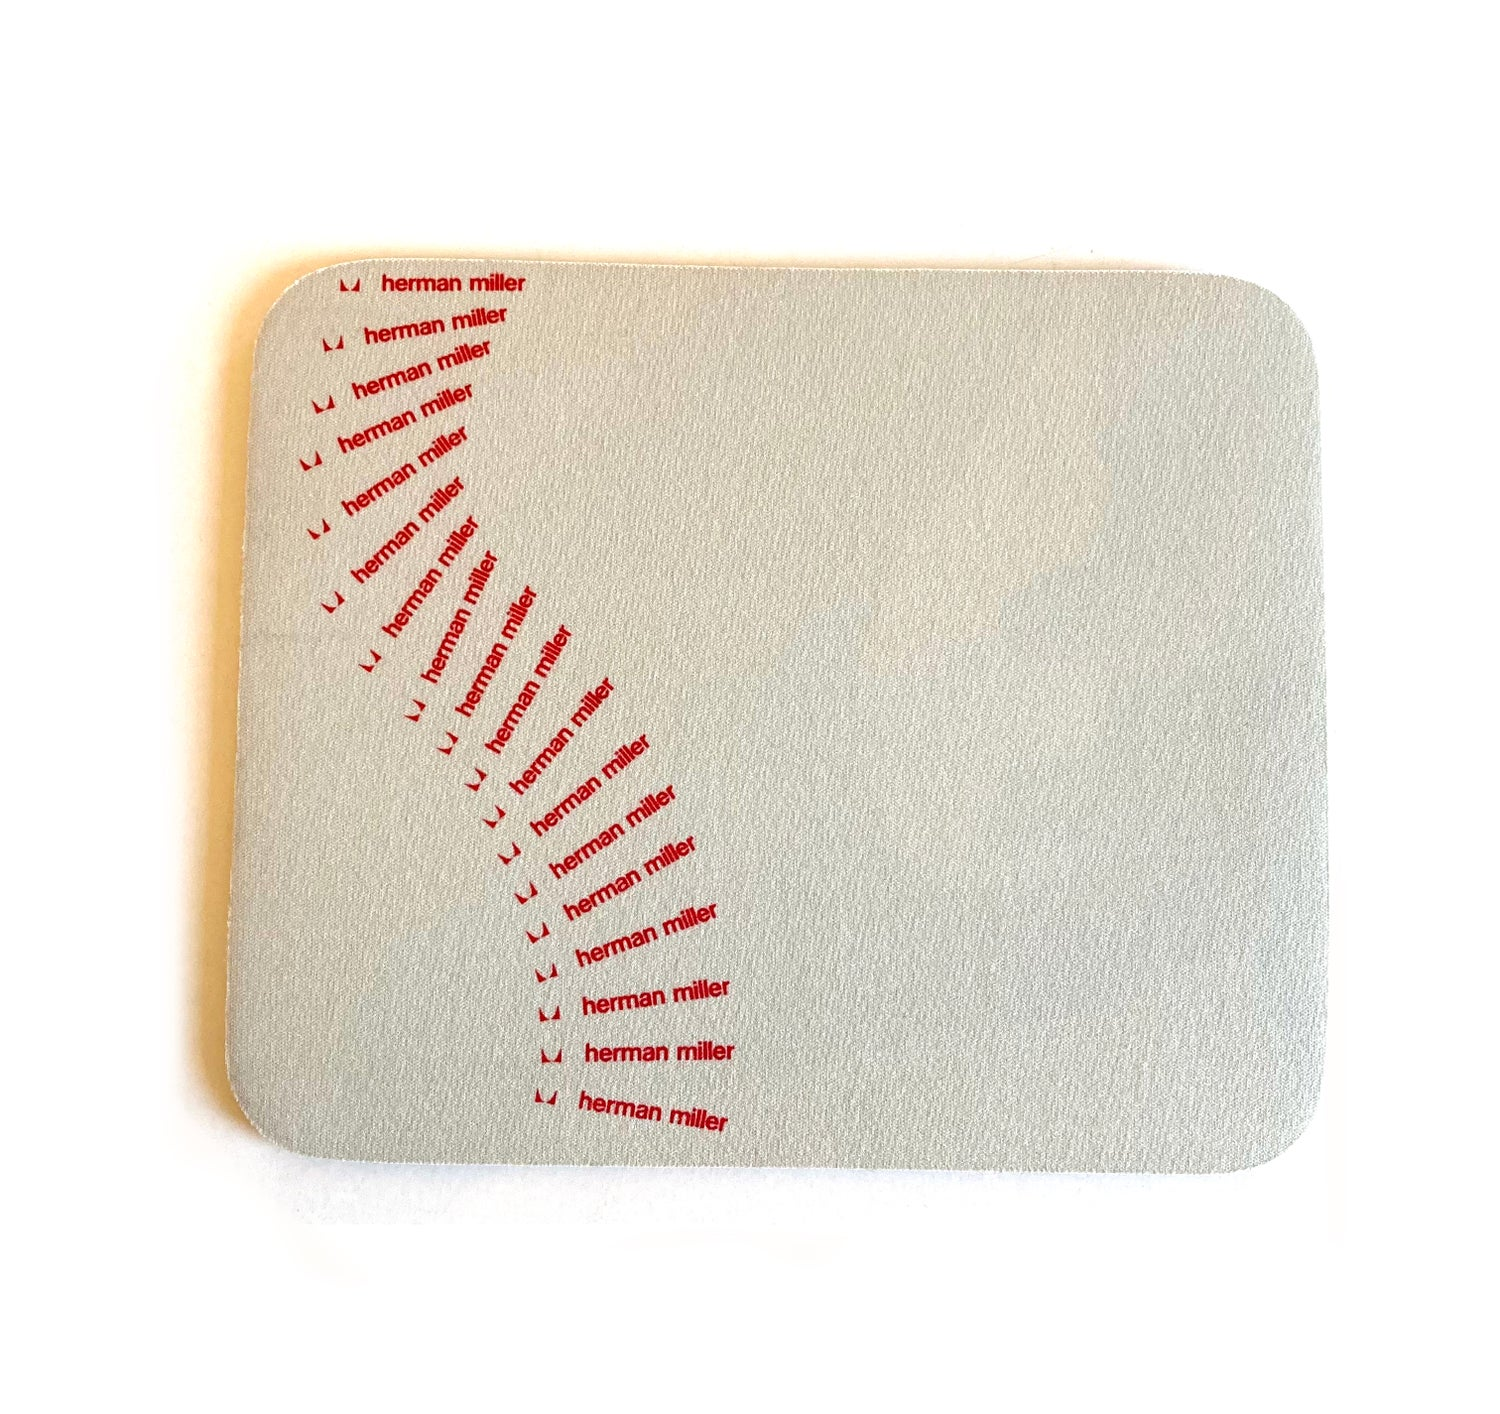 Image of Herman Miller Mouse Pad